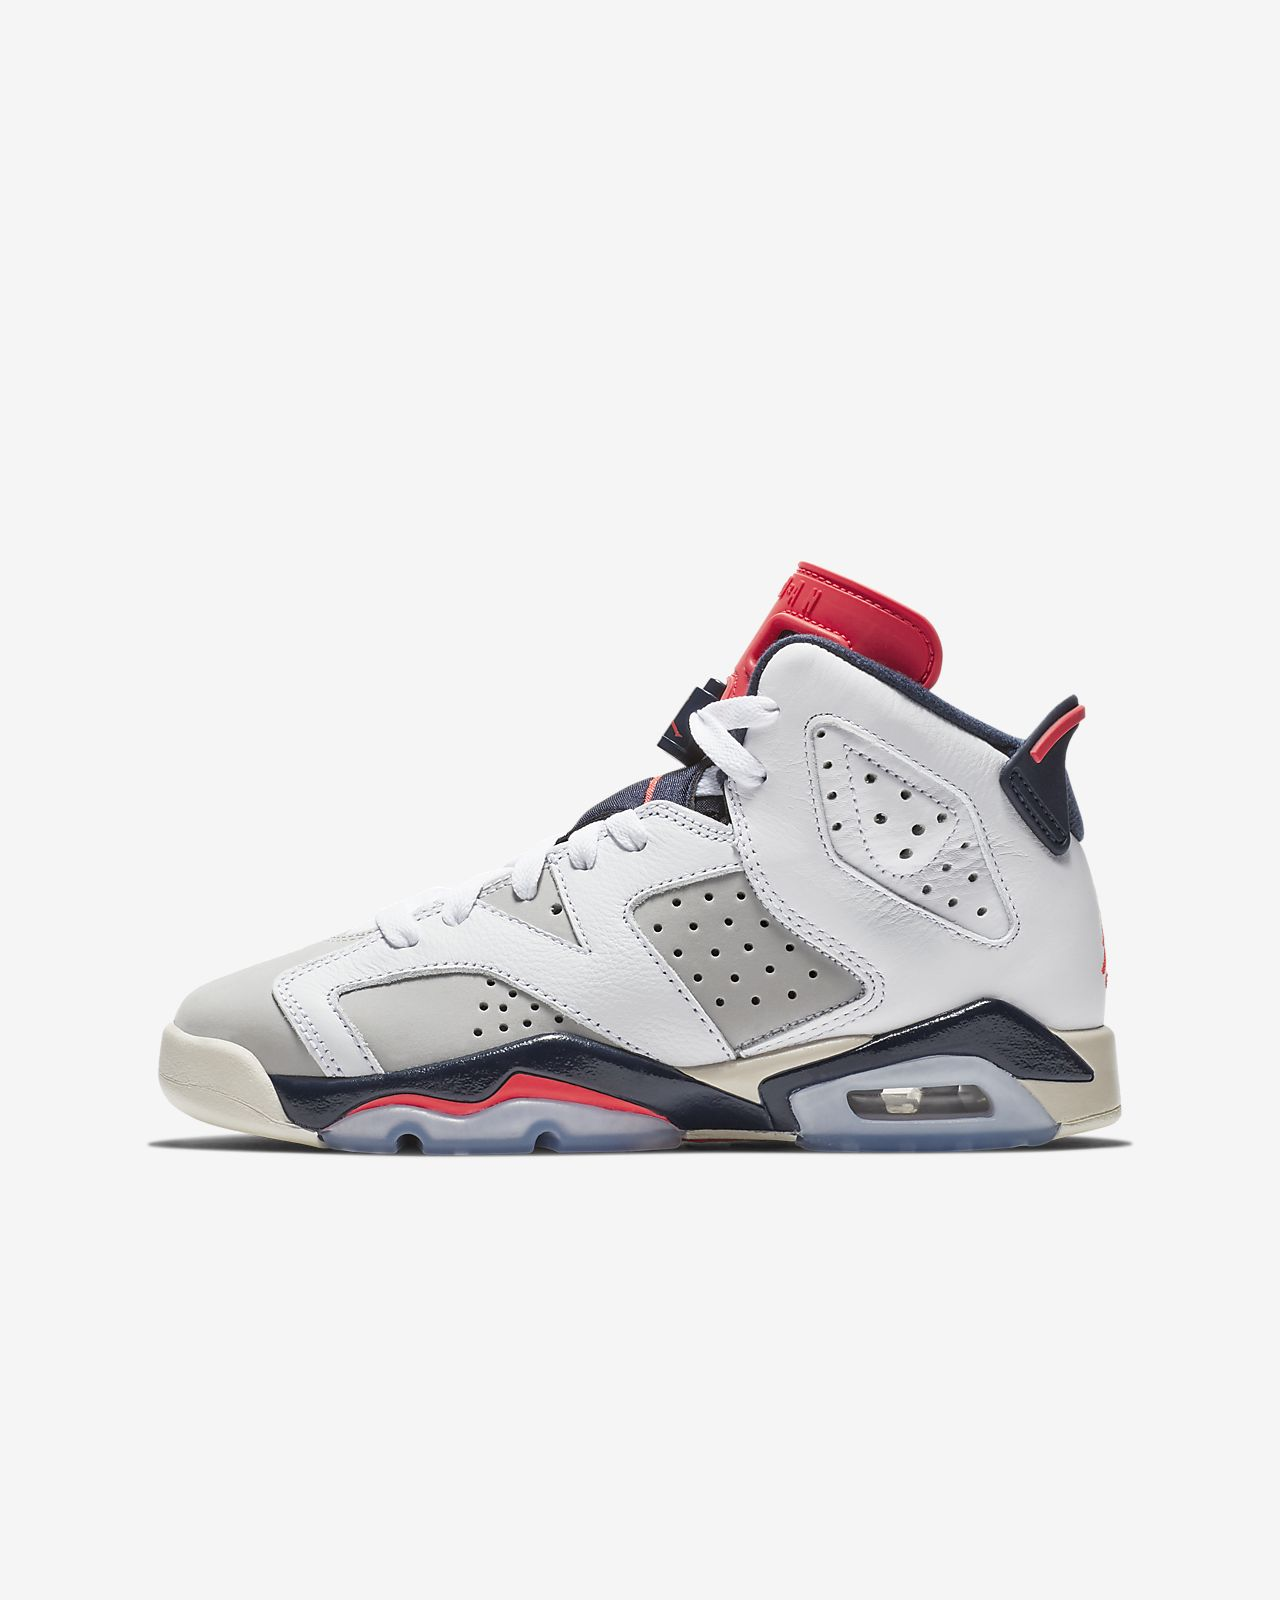 Air Jordan 6 Retro Big Kids Shoe